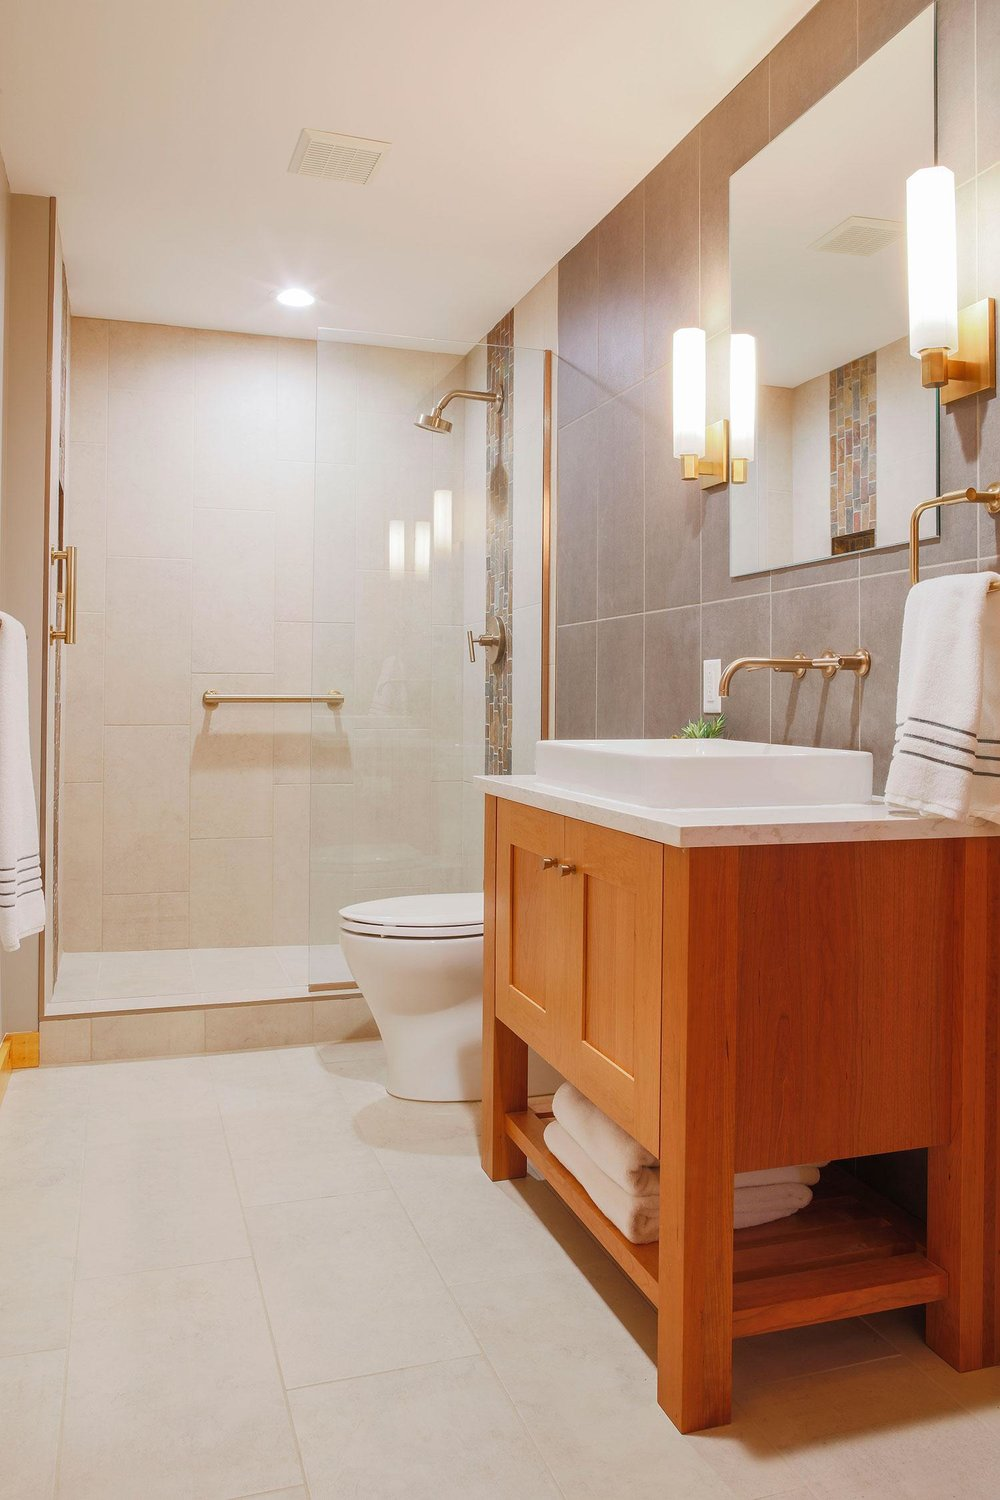 Guest bath, with glass door shower.